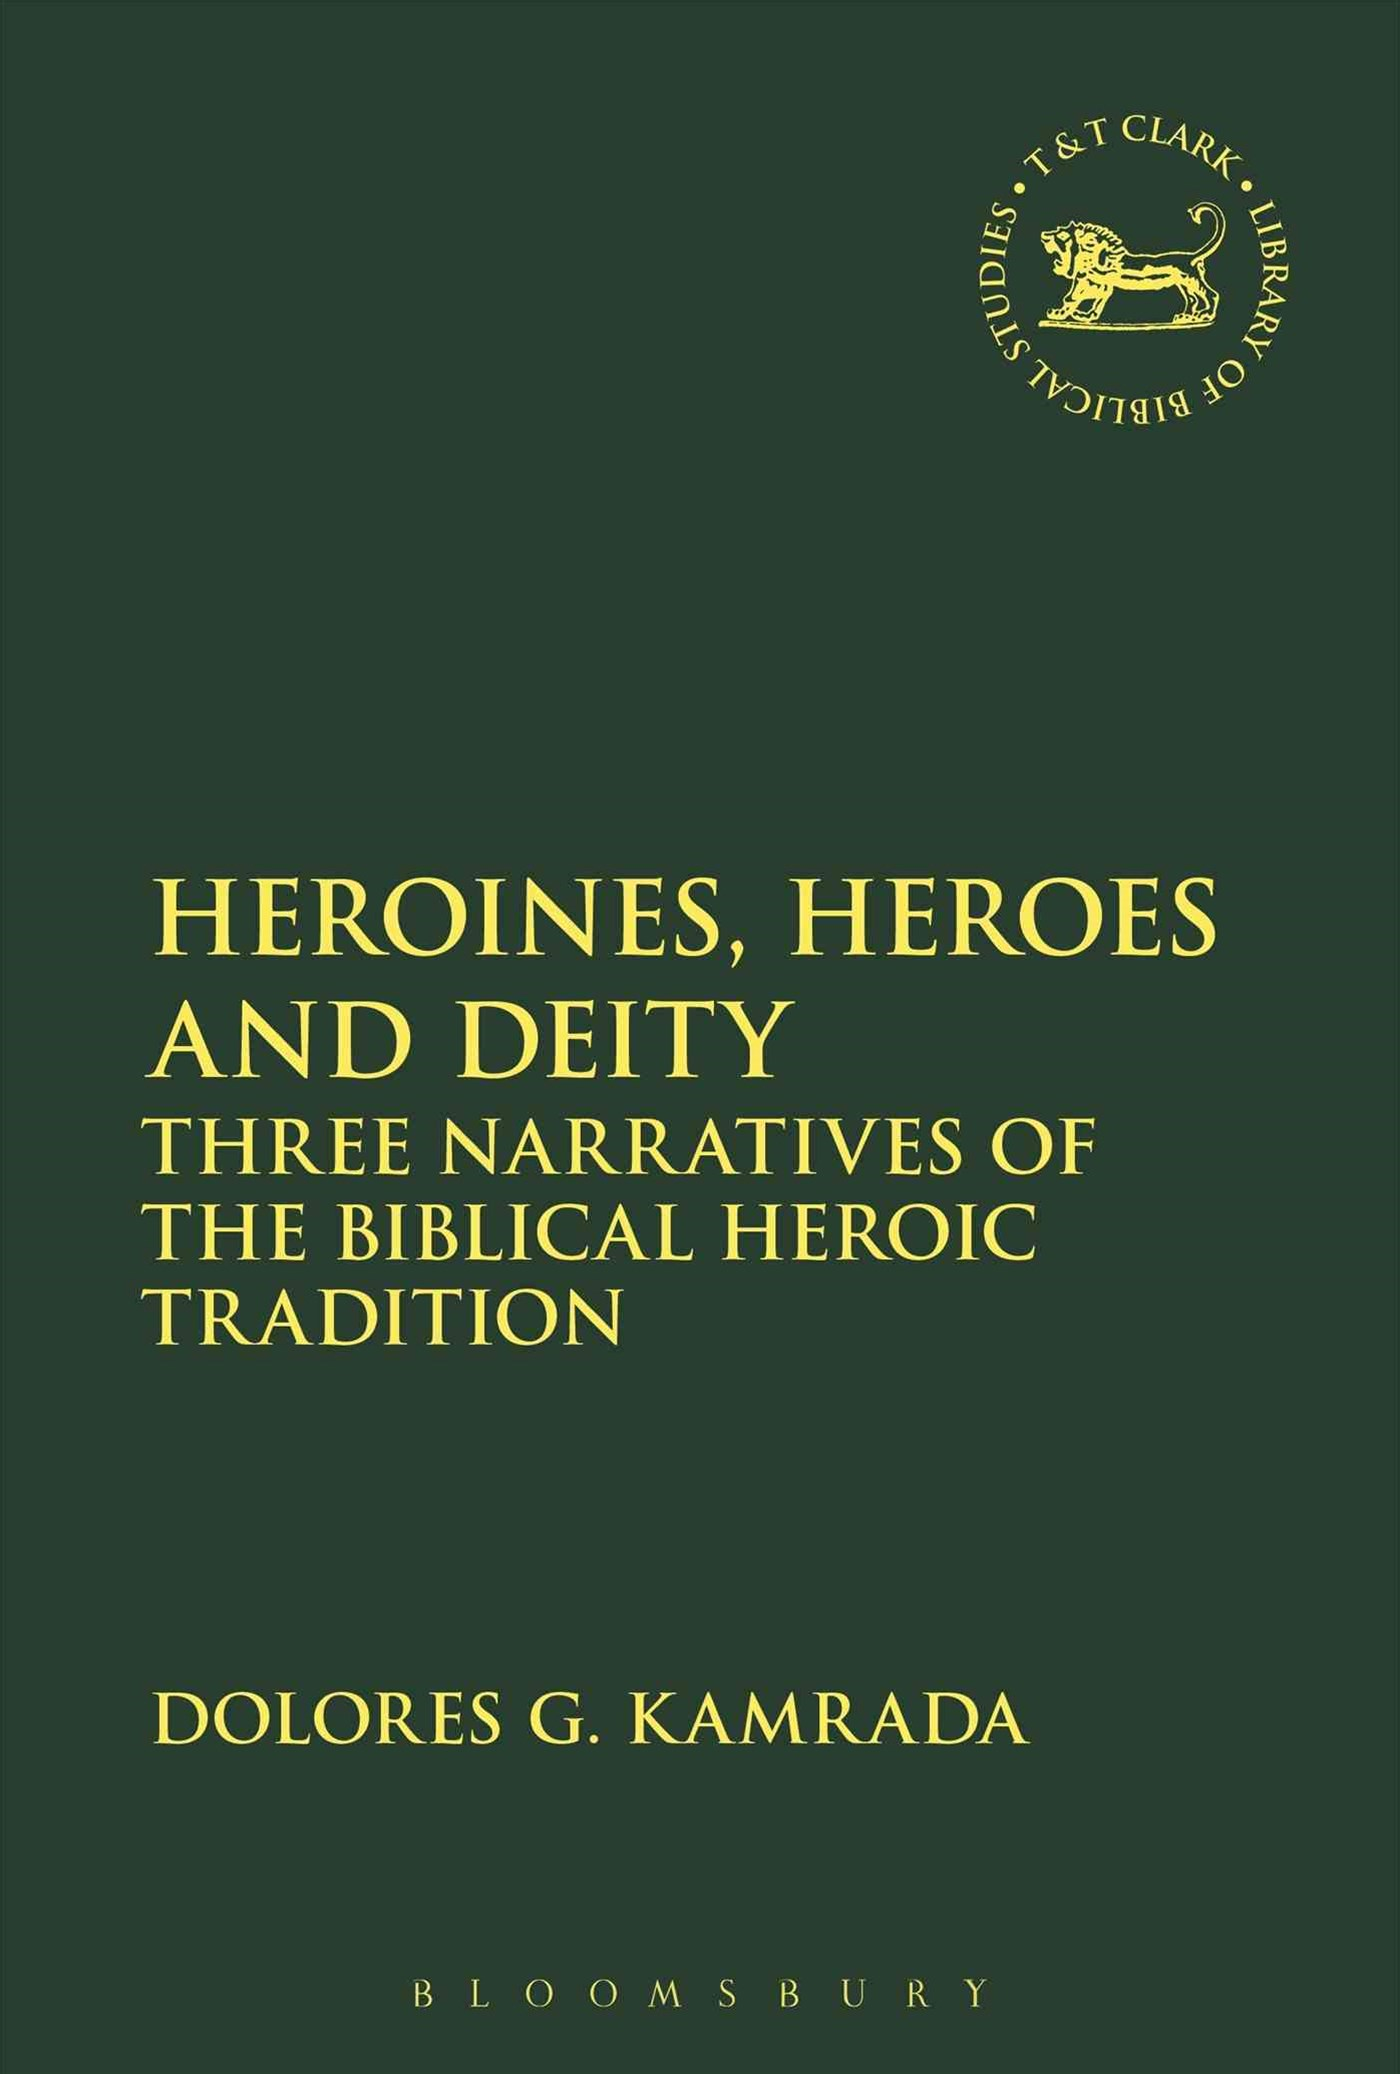 Heroines, Heroes and Deity